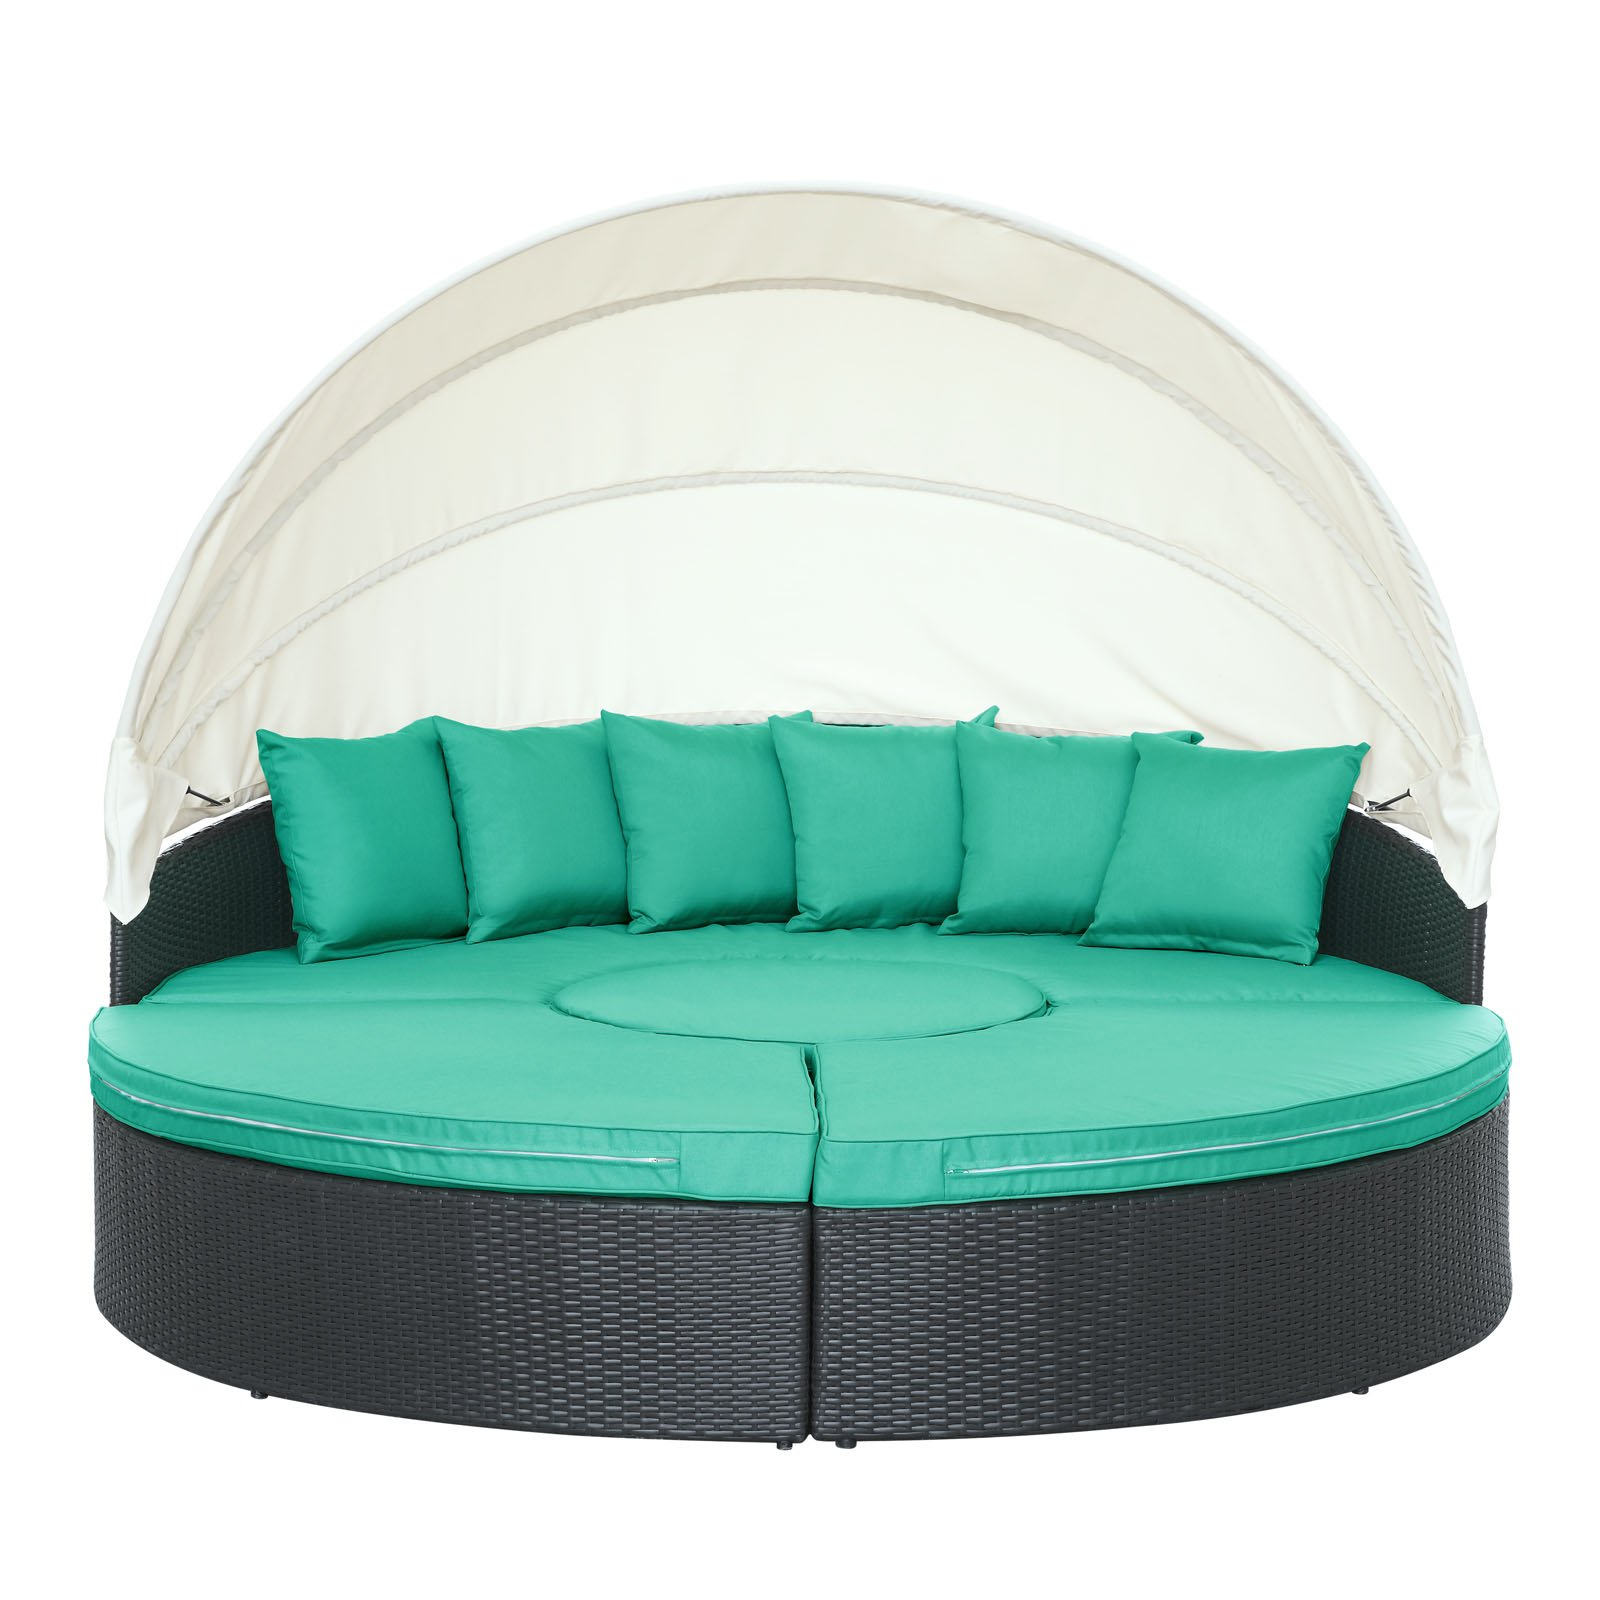 Modway Quest Circular Outdoor Wicker Rattan Patio Daybed with Canopy in Espresso Turquoise